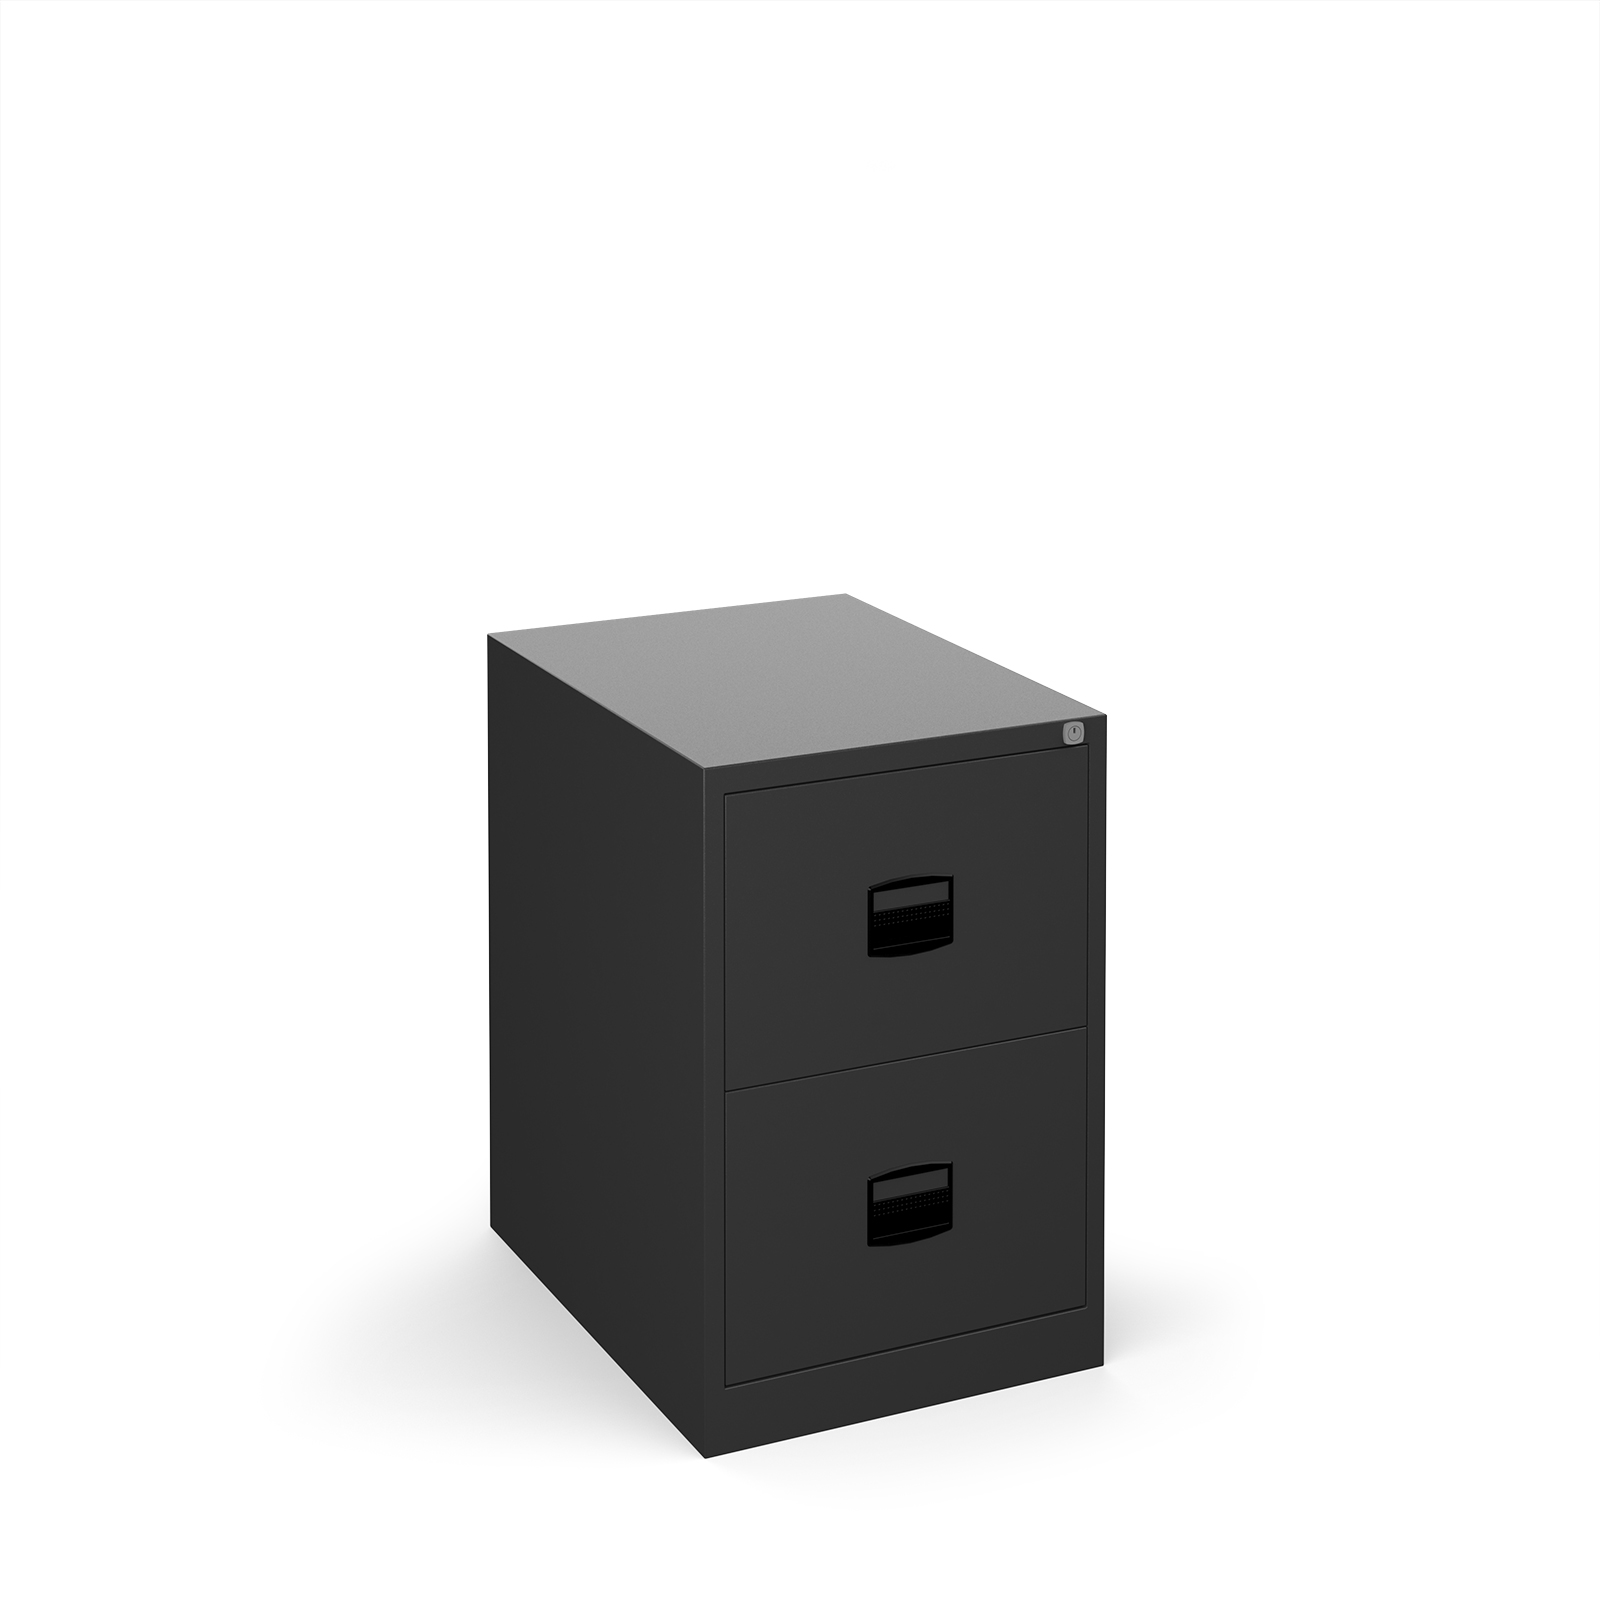 Steel Steel 2 drawer contract filing cabinet 711mm high - black